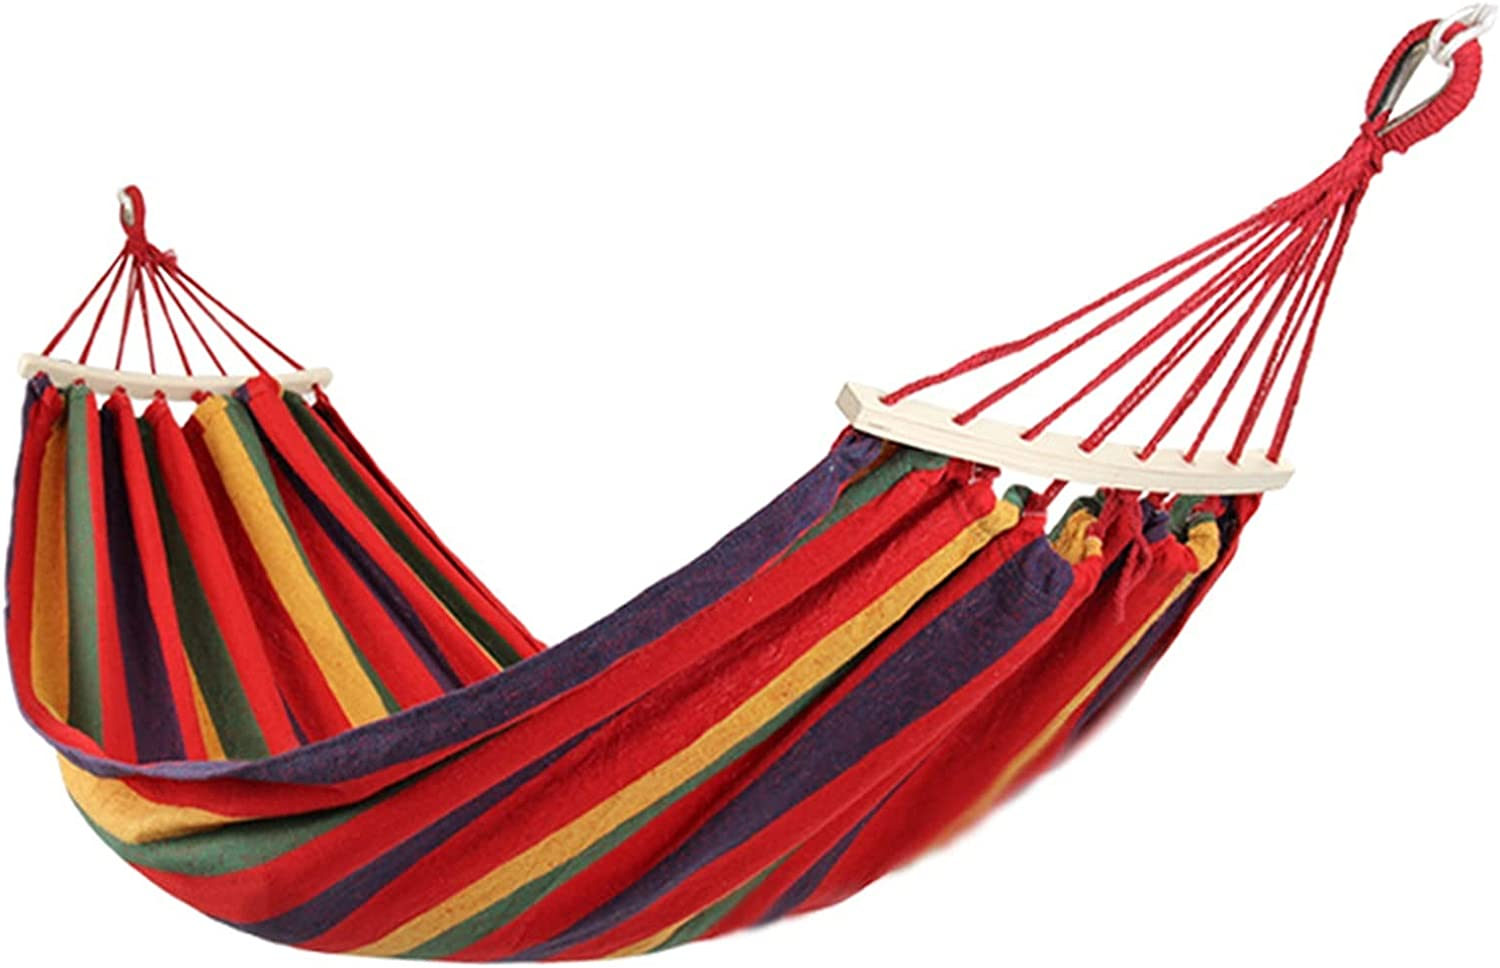 ZWDP Shopping Hero Luxury Single Hammock Cotton Wide Extra Pole Inexpensive Max 83% OFF